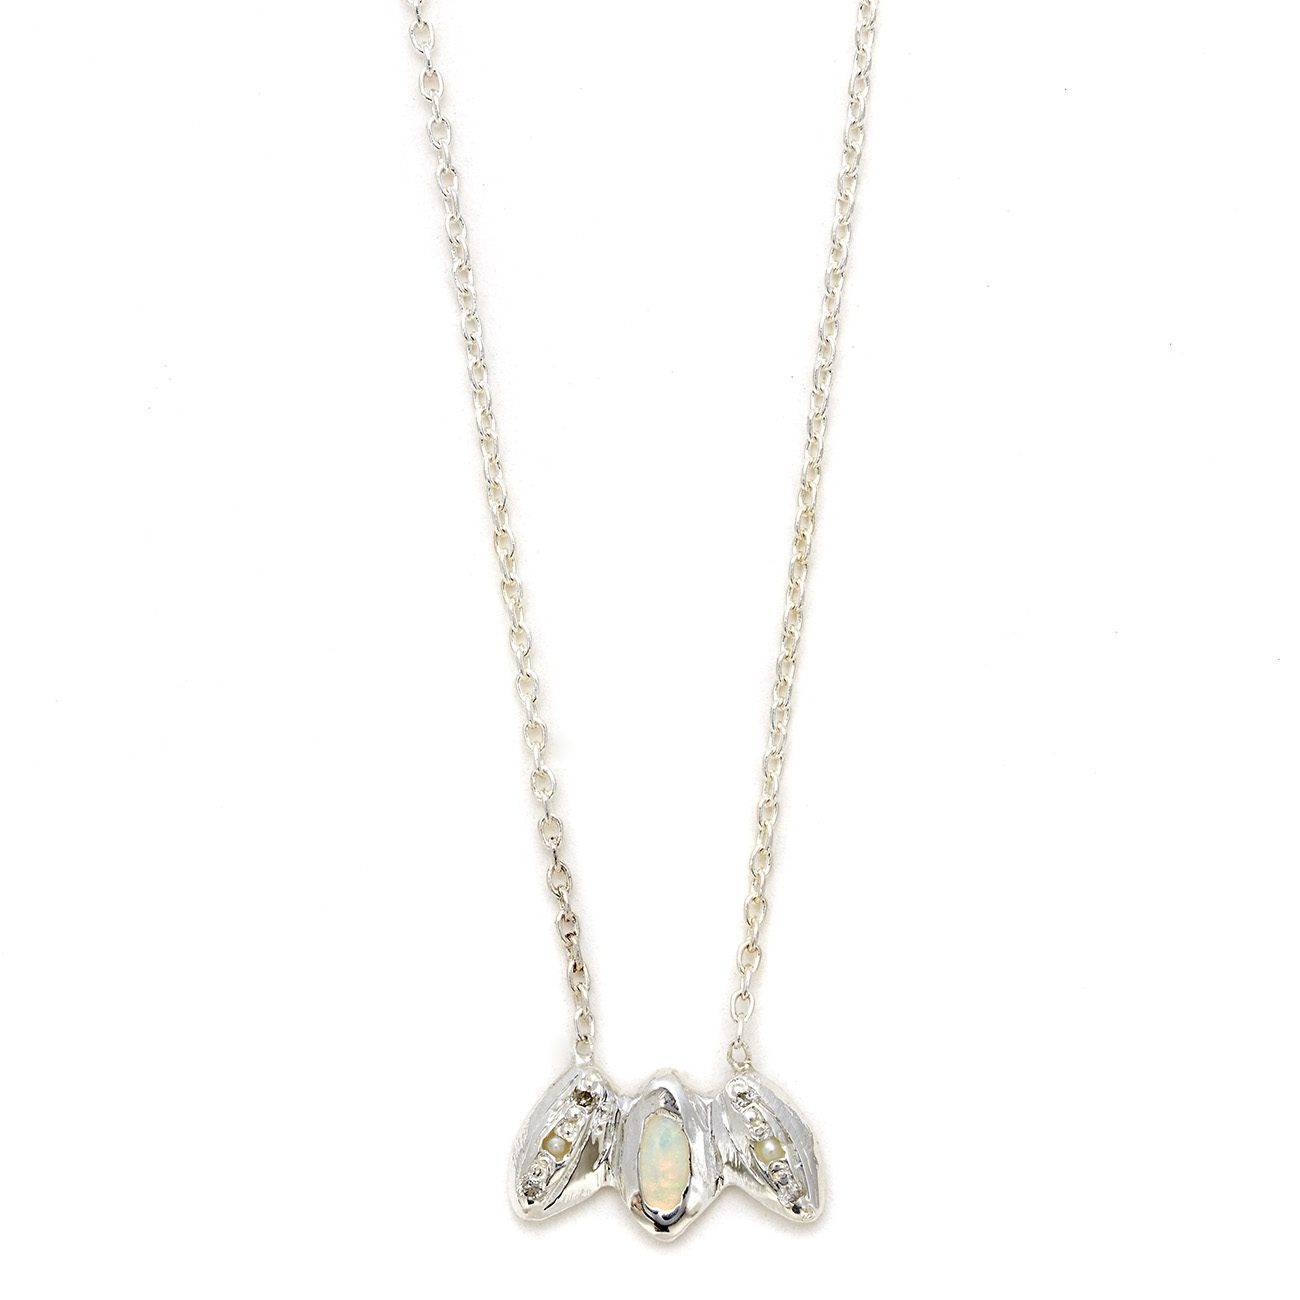 Elisa Solomon - Sterling Silver 3 Marquis Necklace